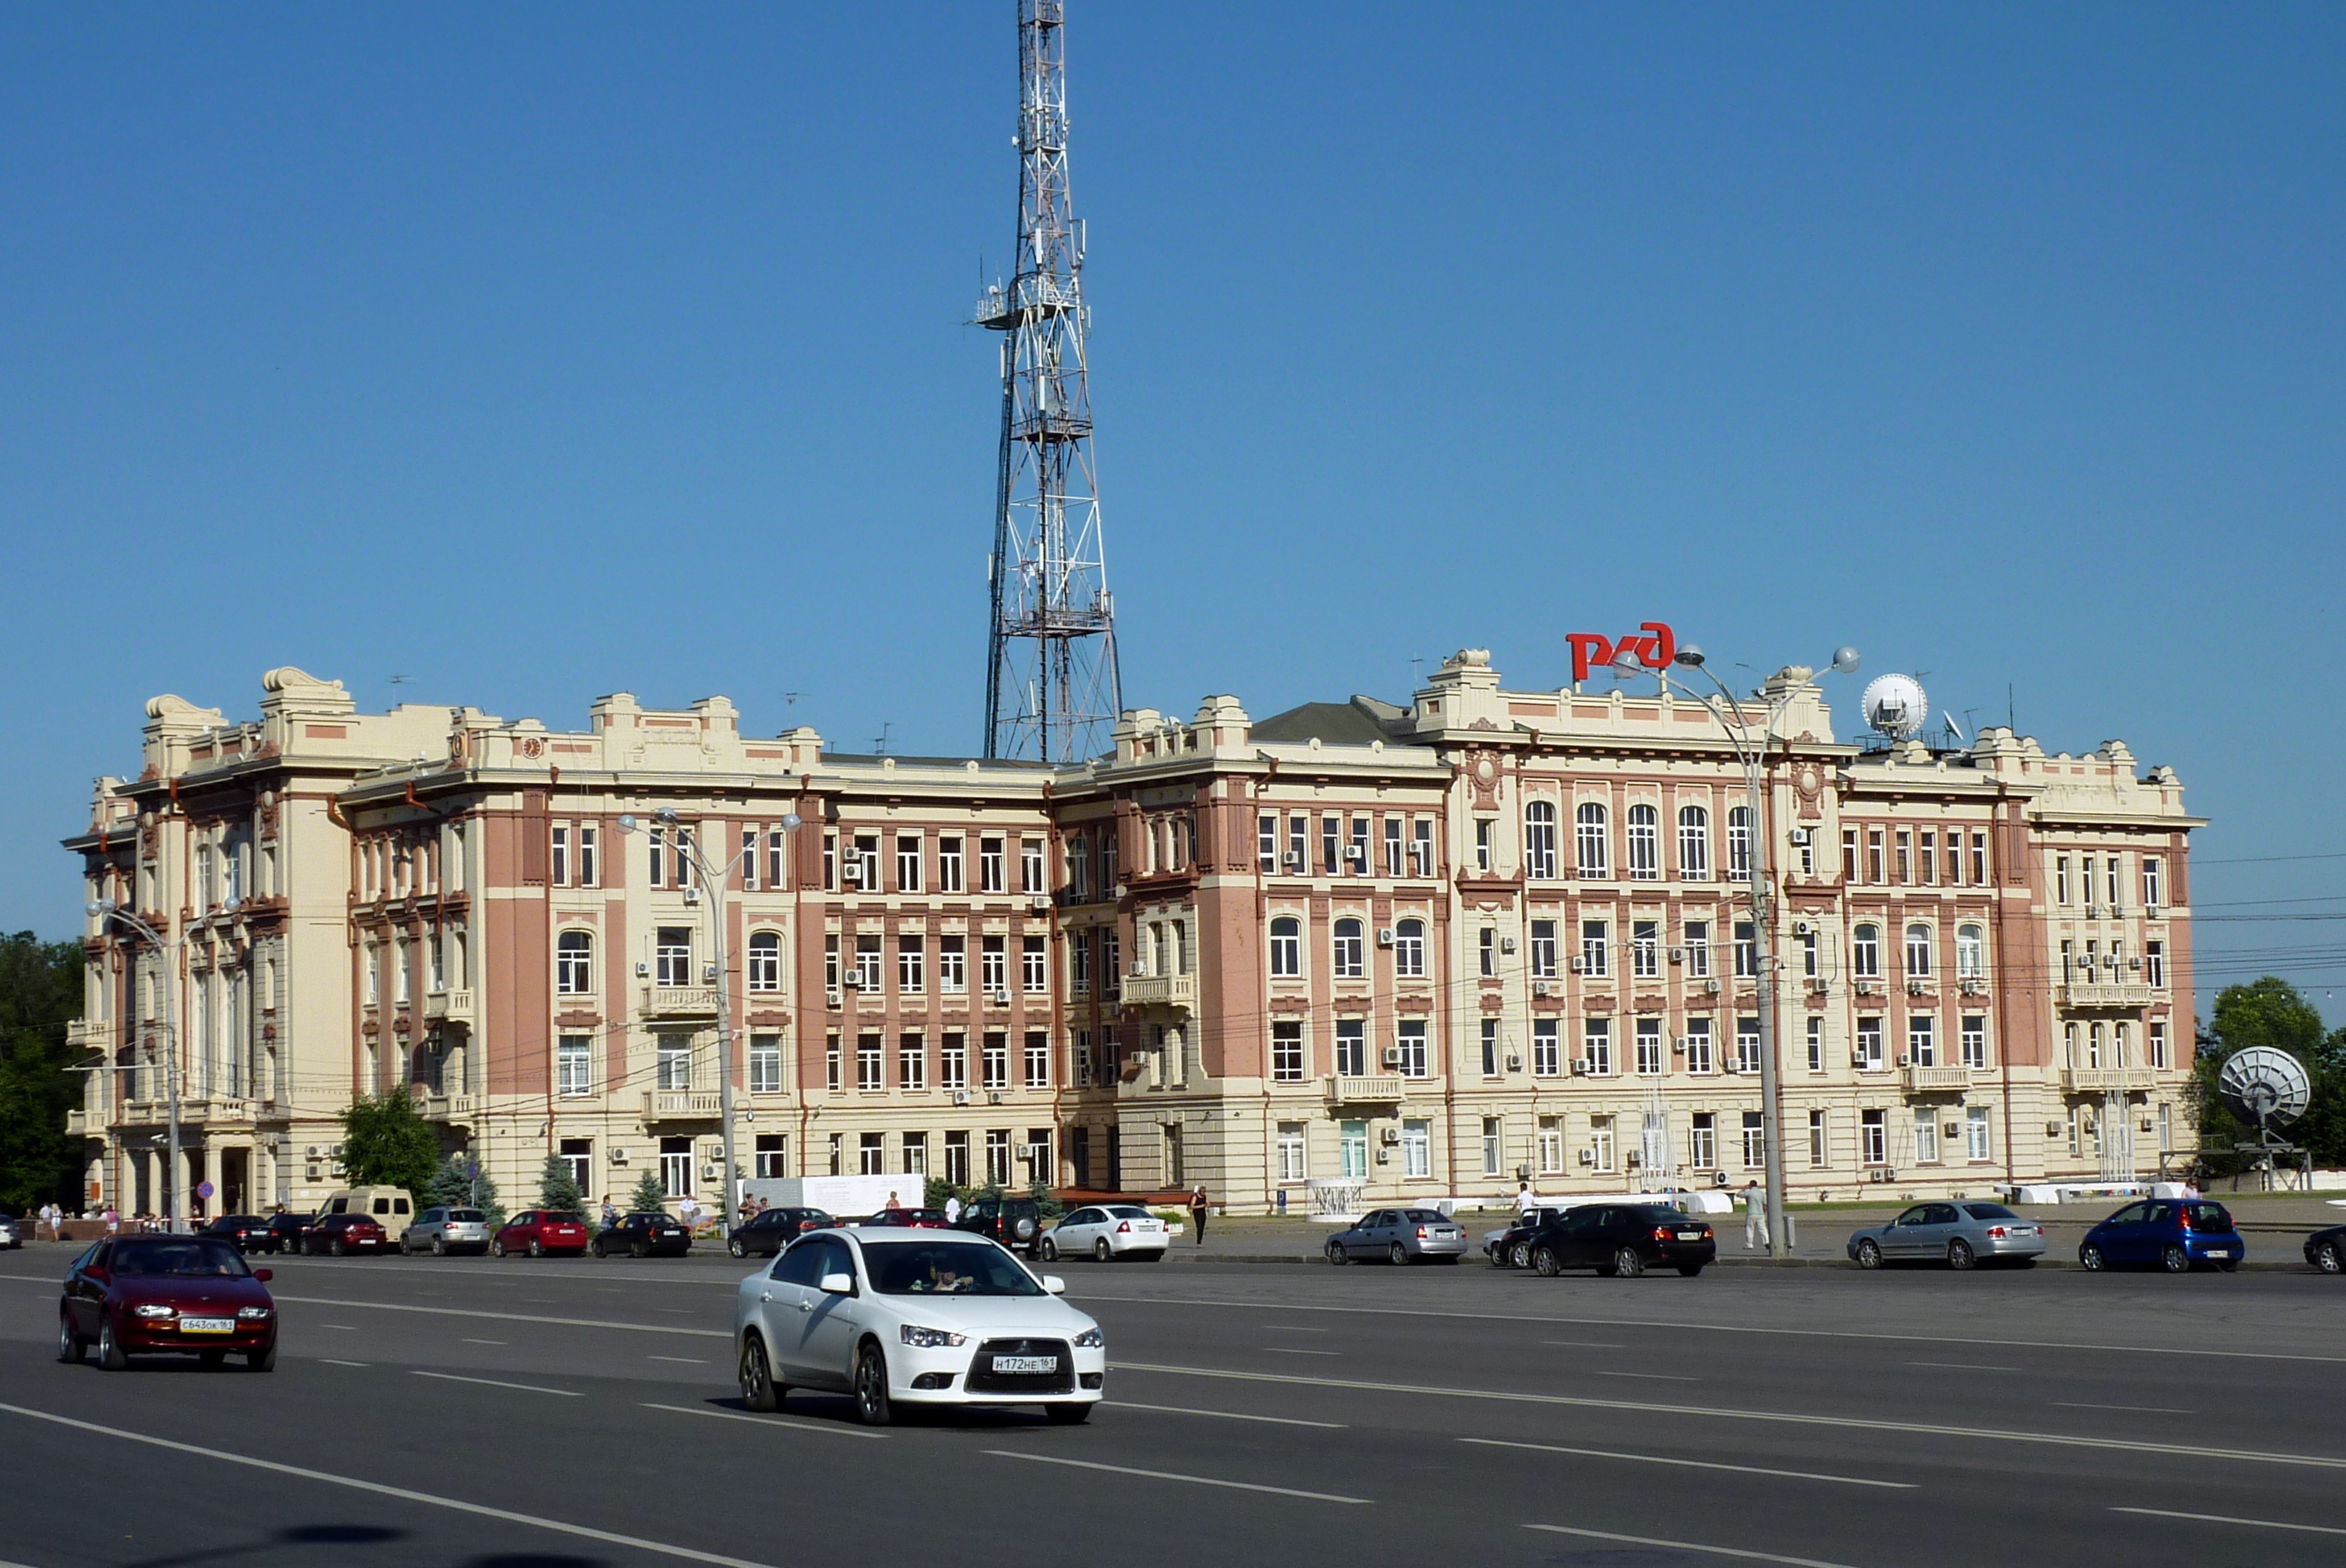 City of Rostov, population: number and ethnic composition 86